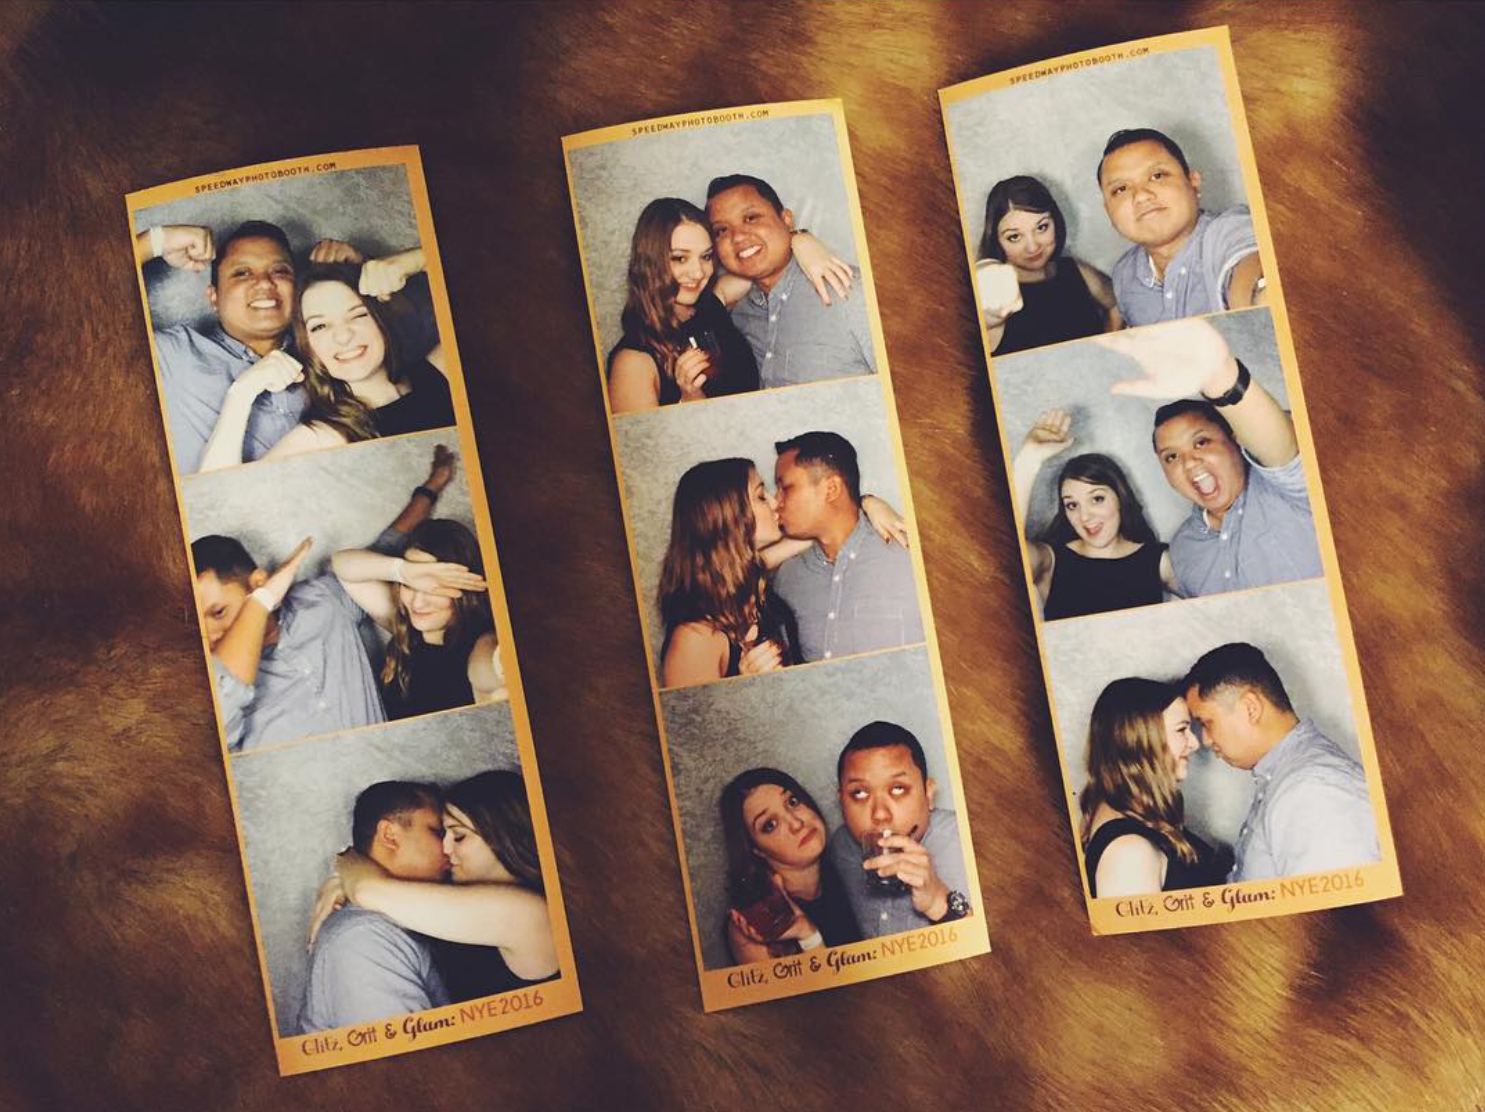 A Couple Show Off Their Custom Photo Strips